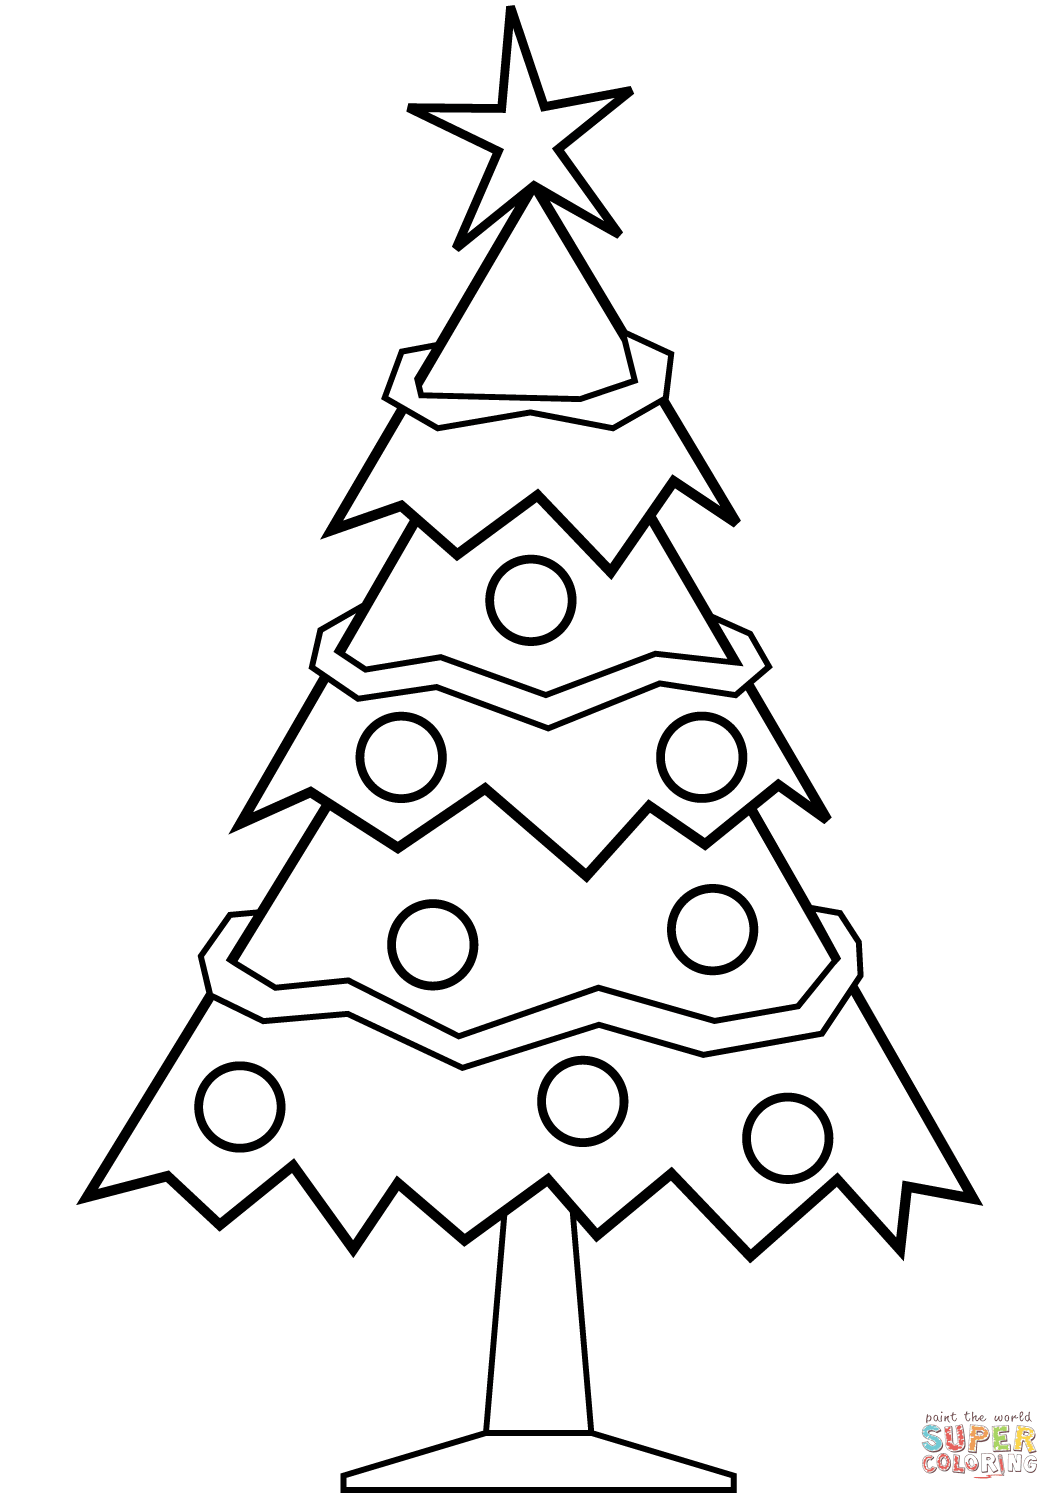 simple christmas tree coloring pages dessincoloriage